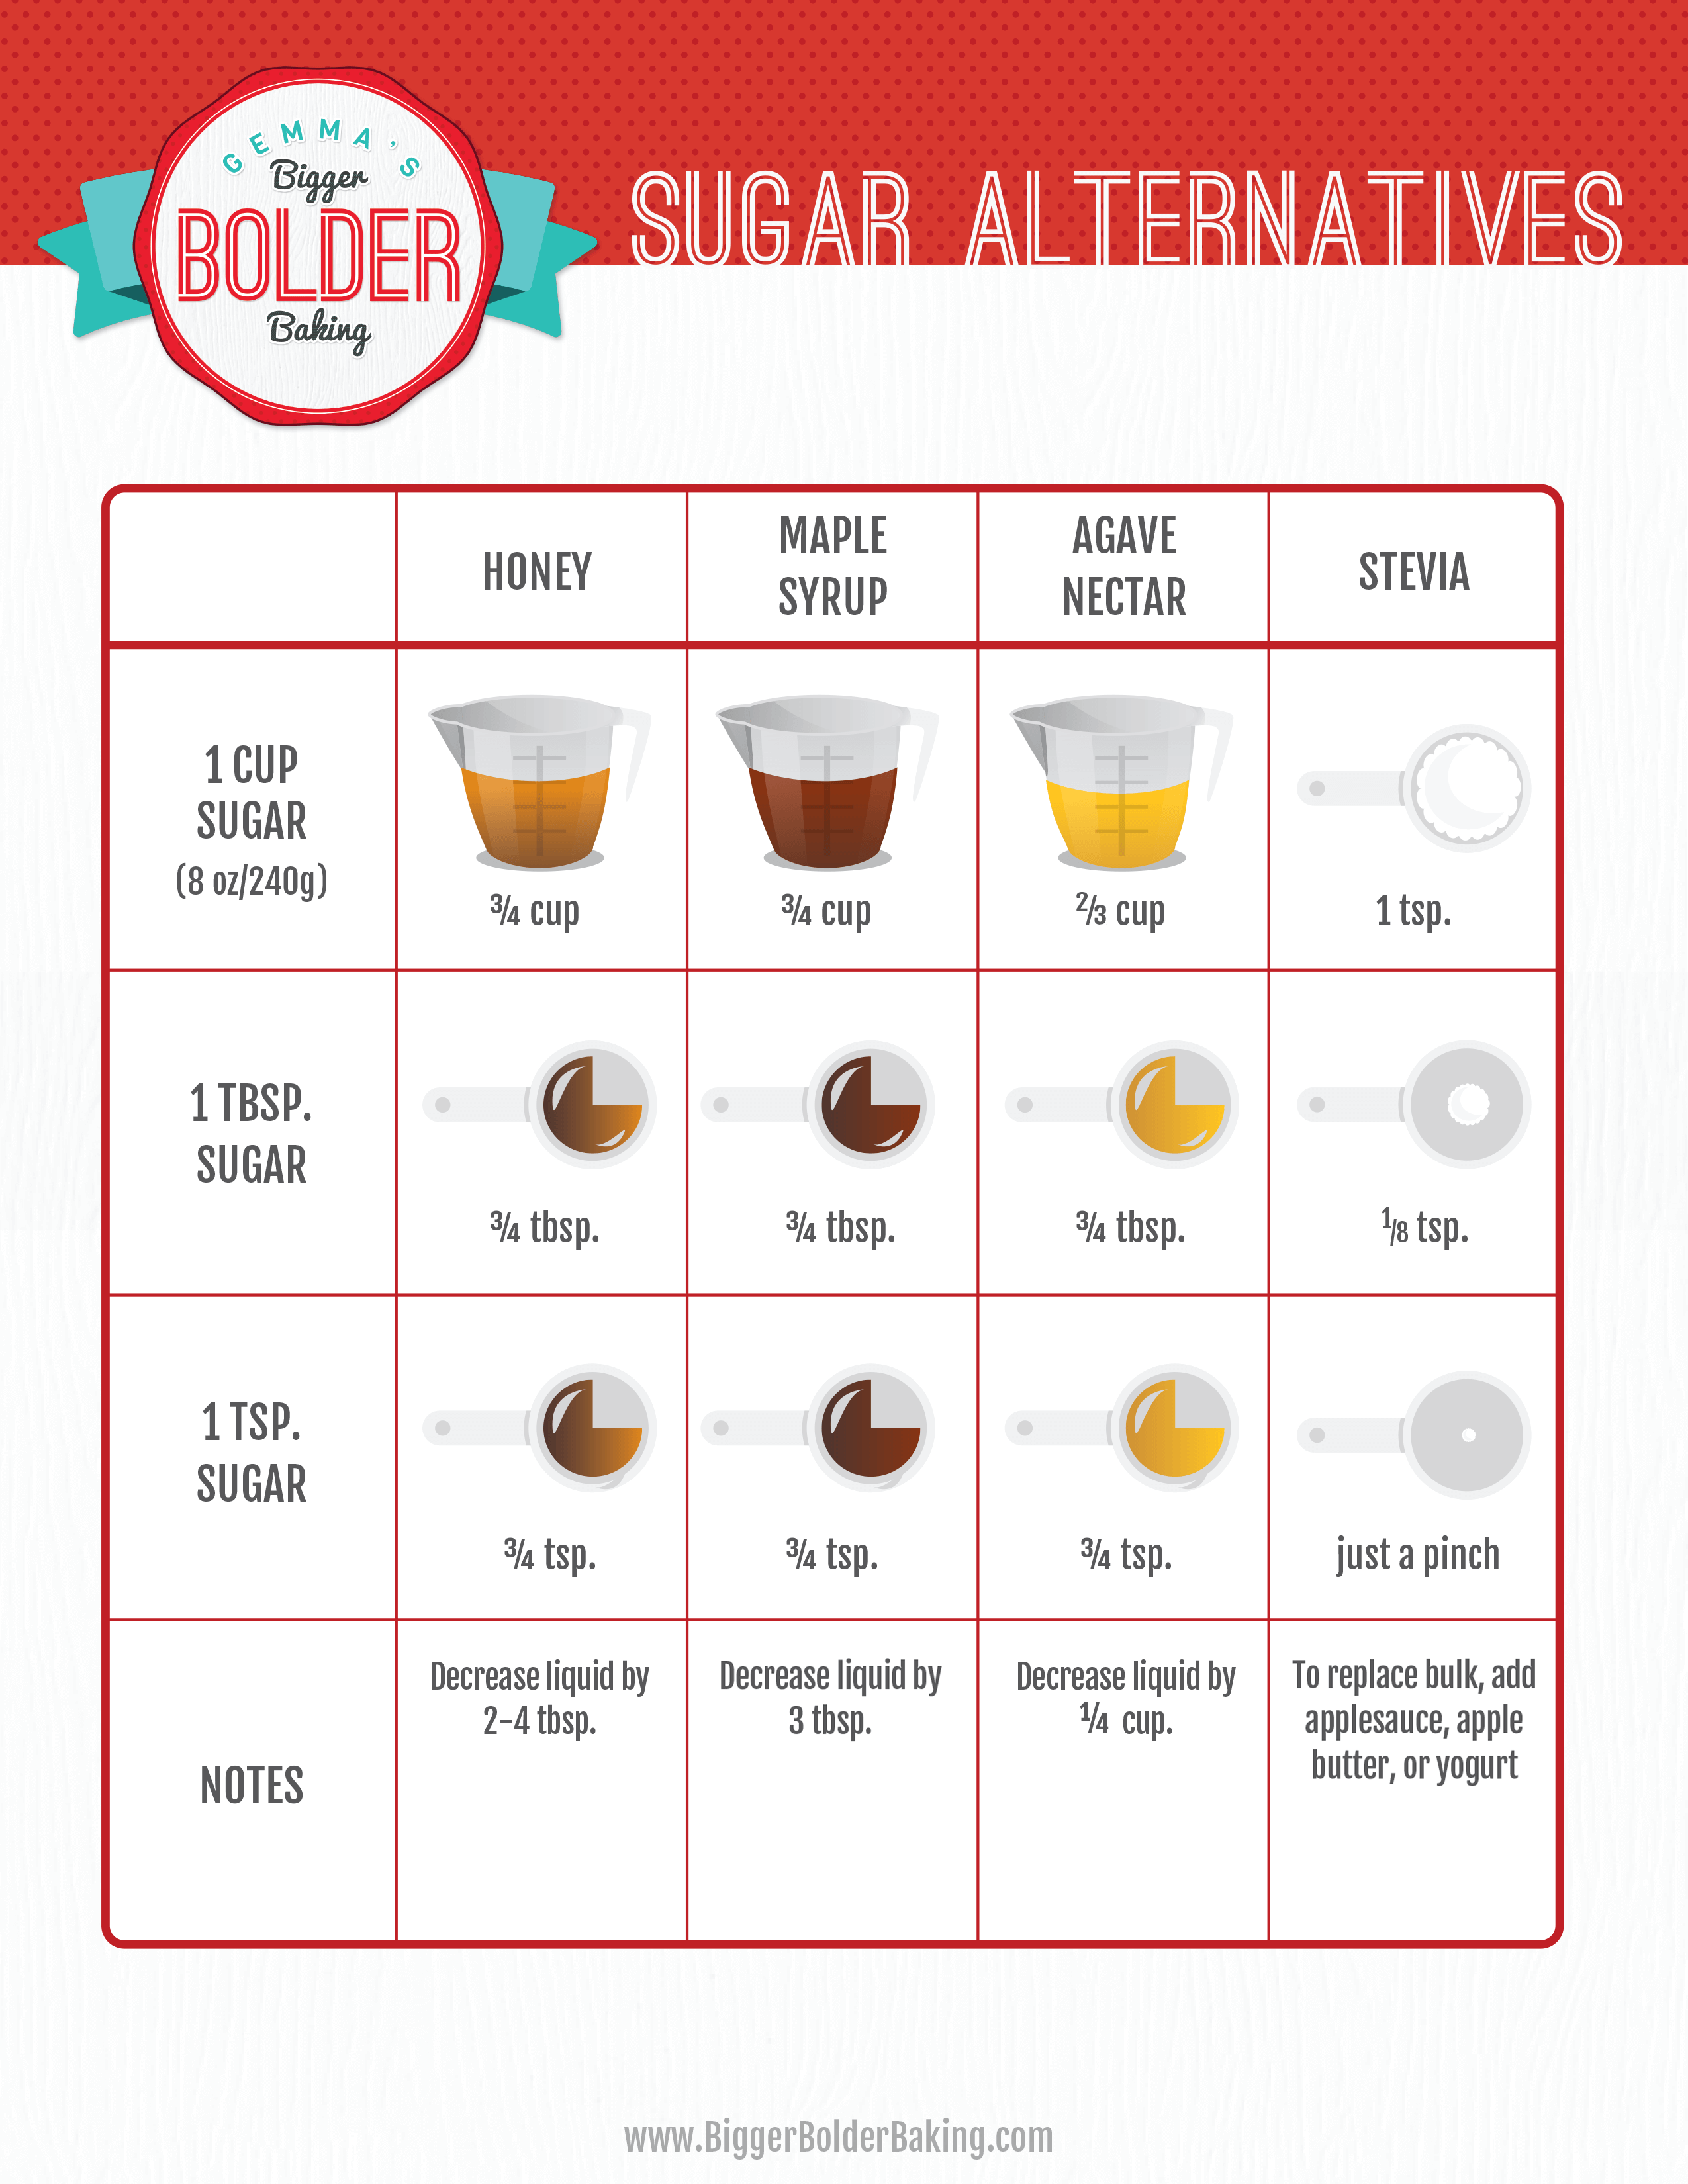 How to substitute sugar in your baking free substitutes chart best sugar substitutes chart for baking gemmas bigger bolder baking nvjuhfo Image collections